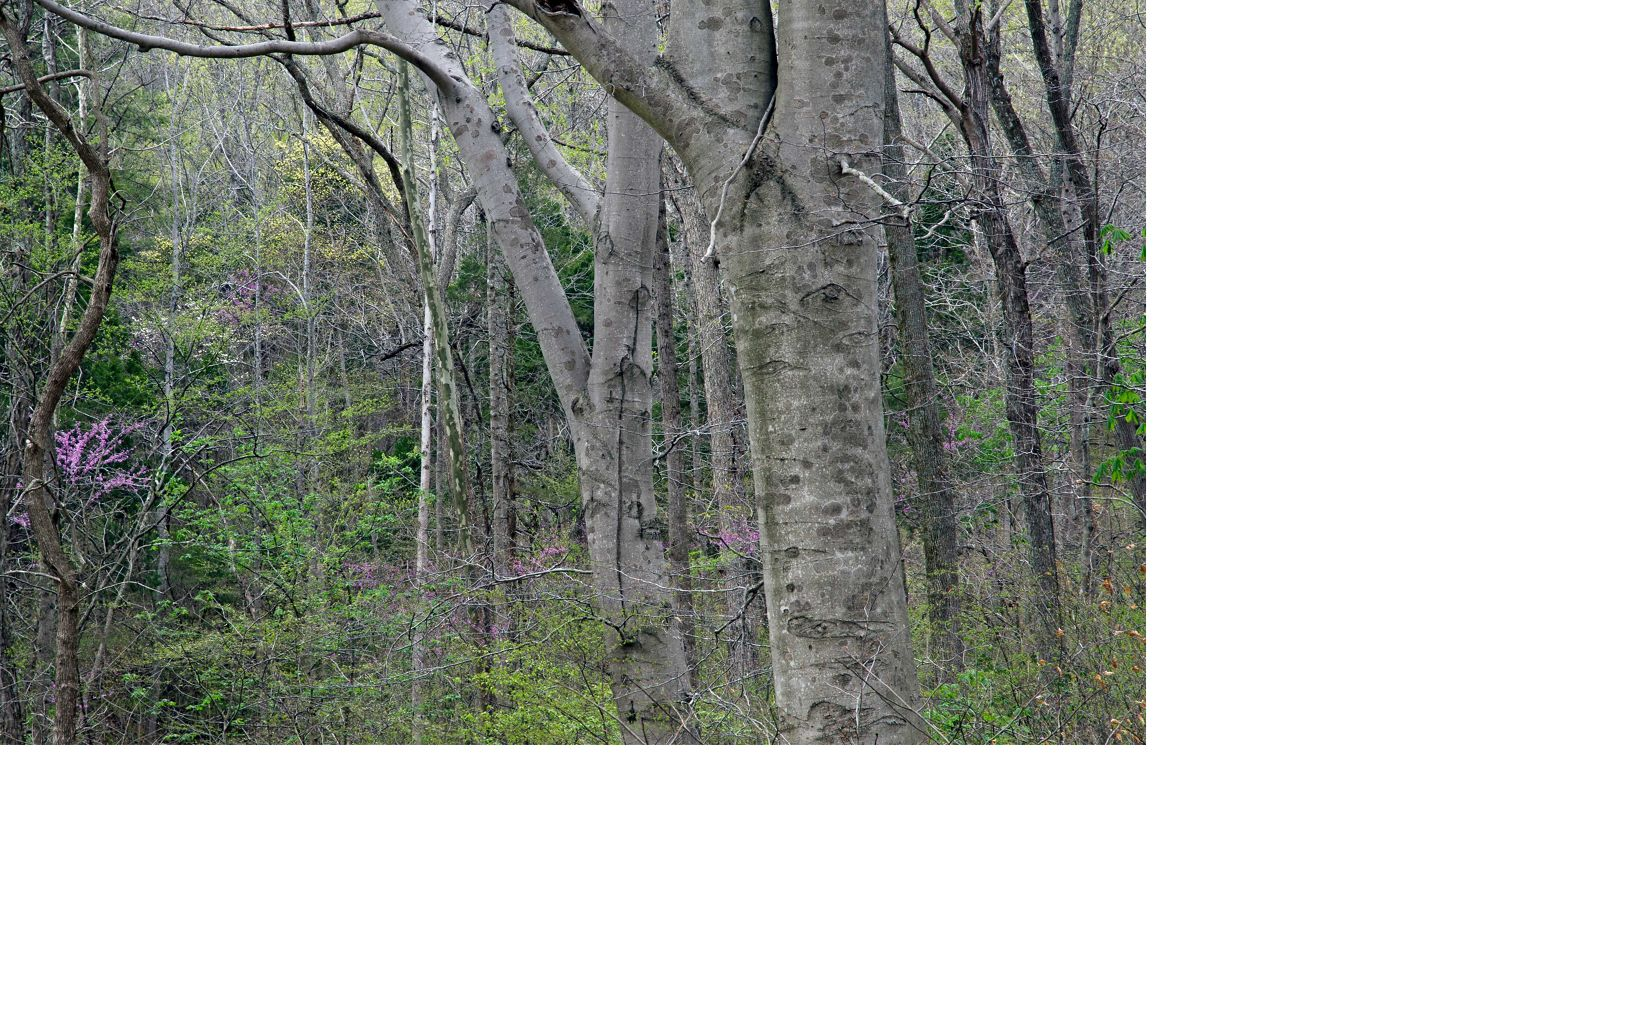 Beech and Redbud trees along the trail in spring